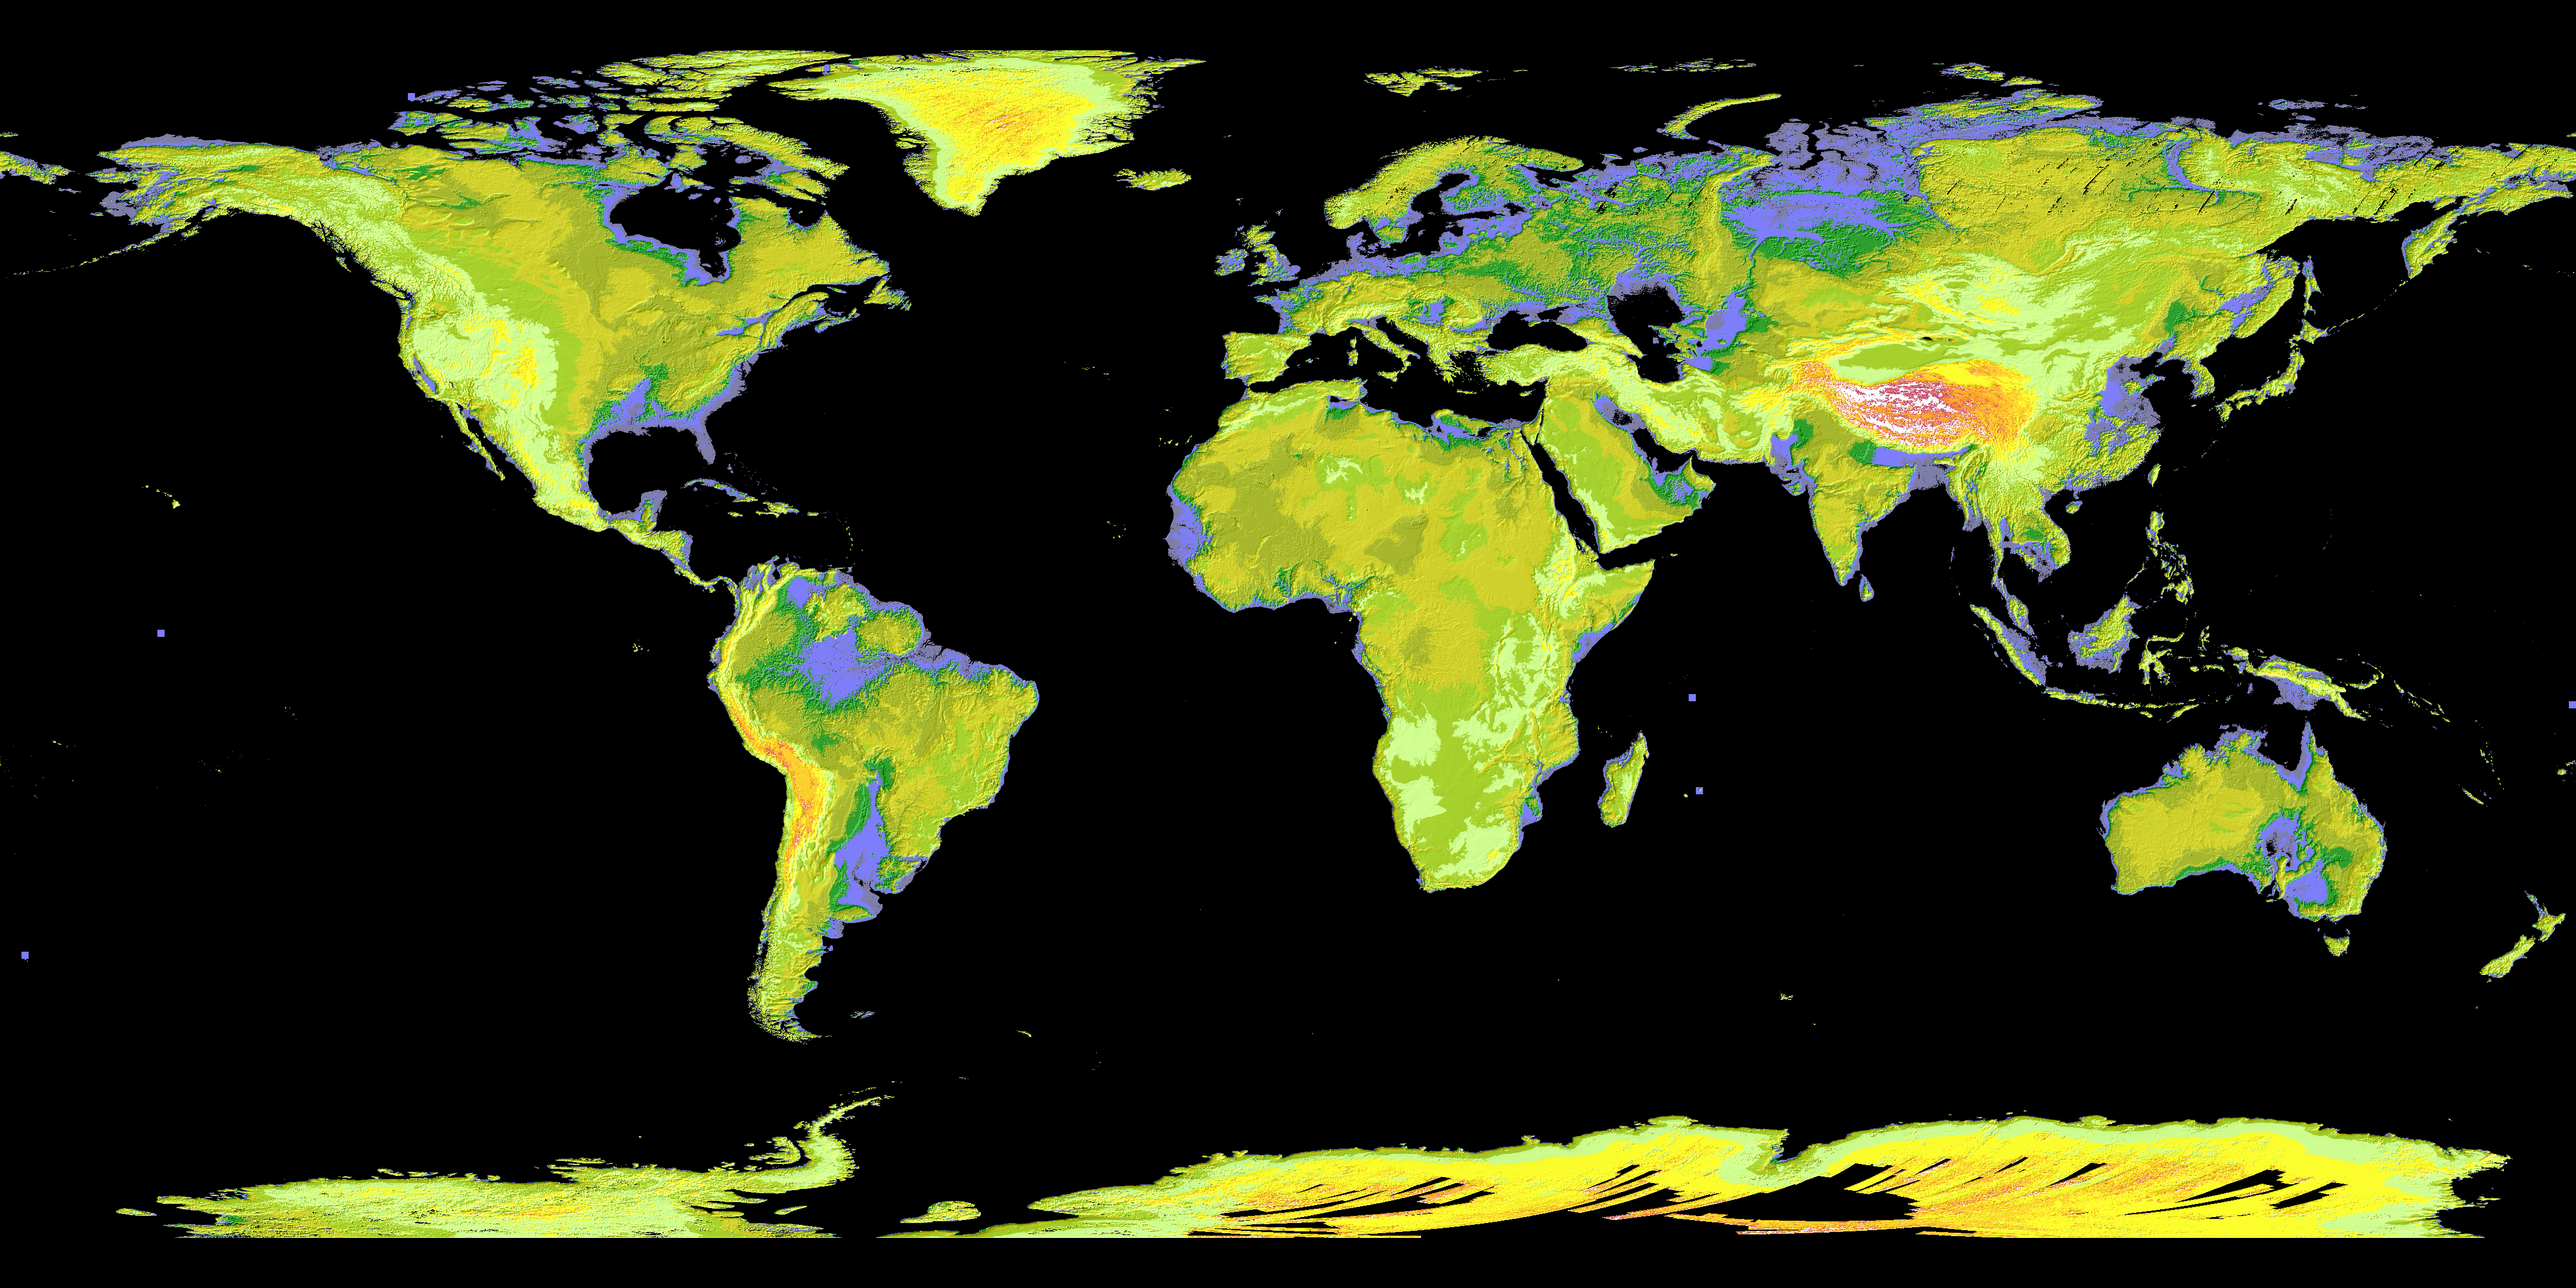 ASTER image of world